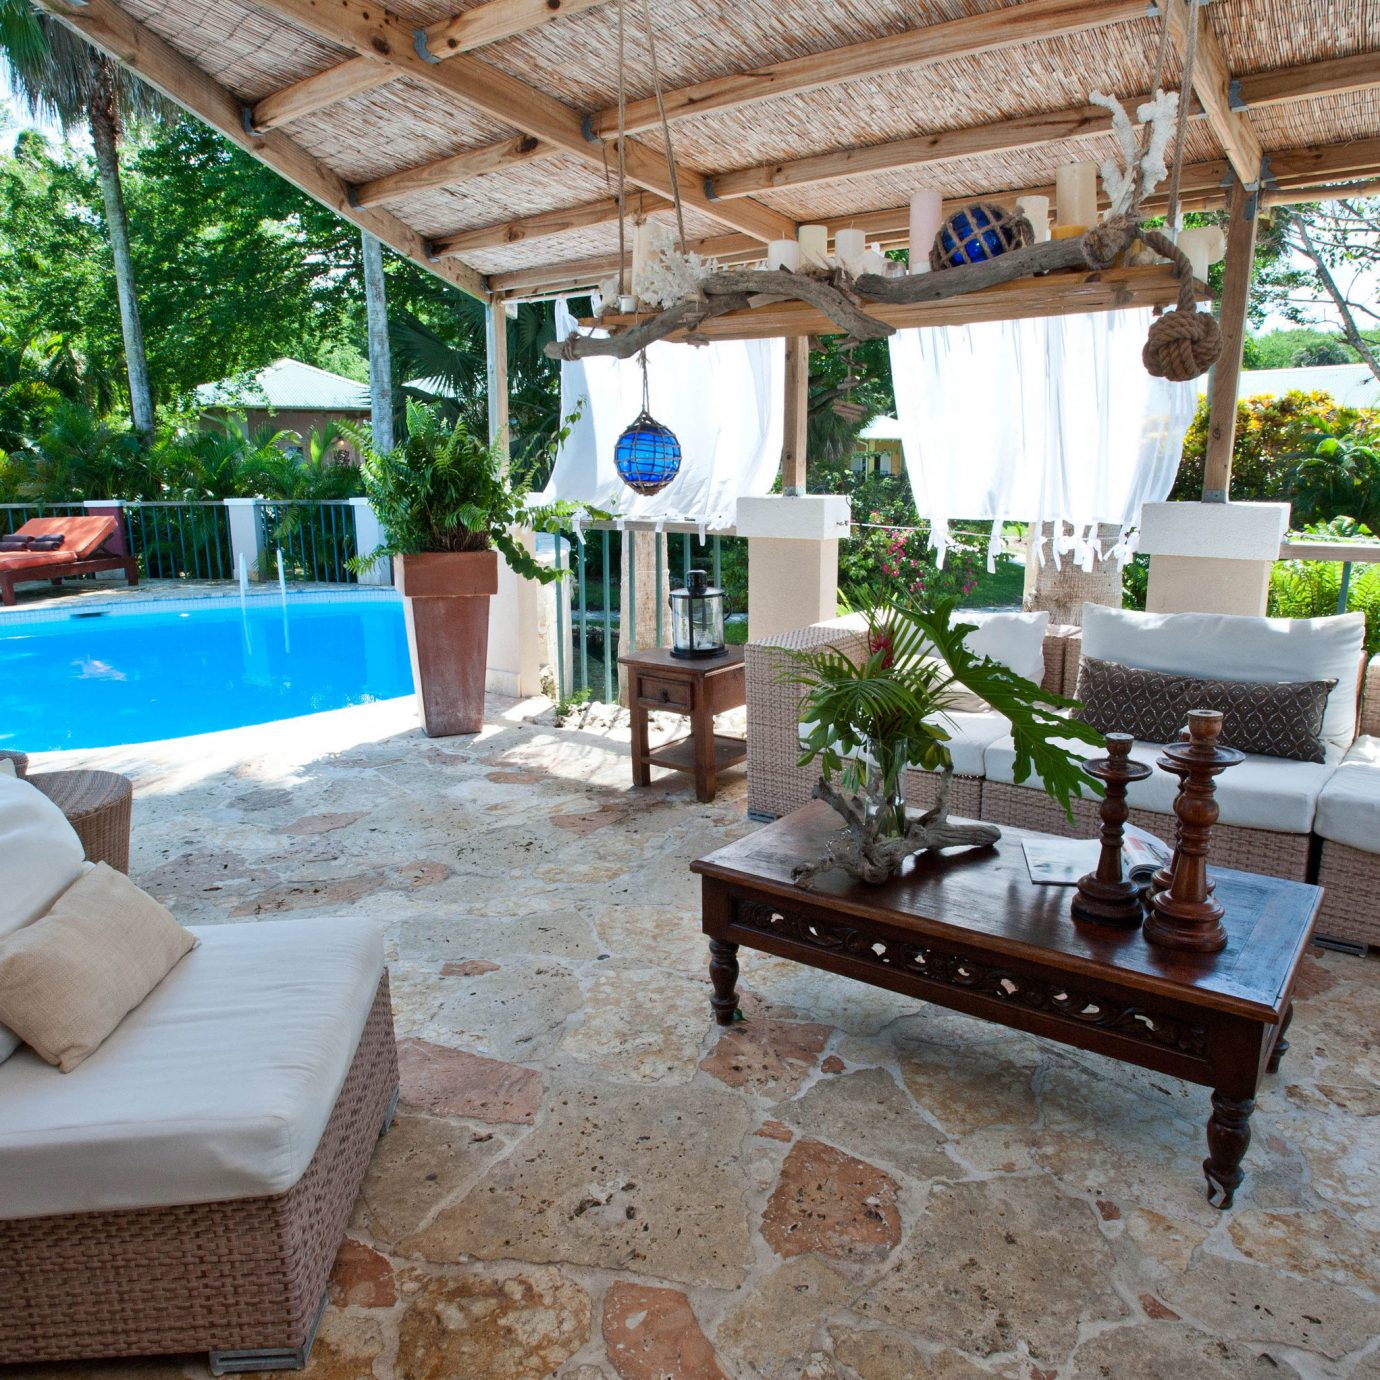 property Villa Resort swimming pool cottage home backyard hacienda living room mansion farmhouse eco hotel